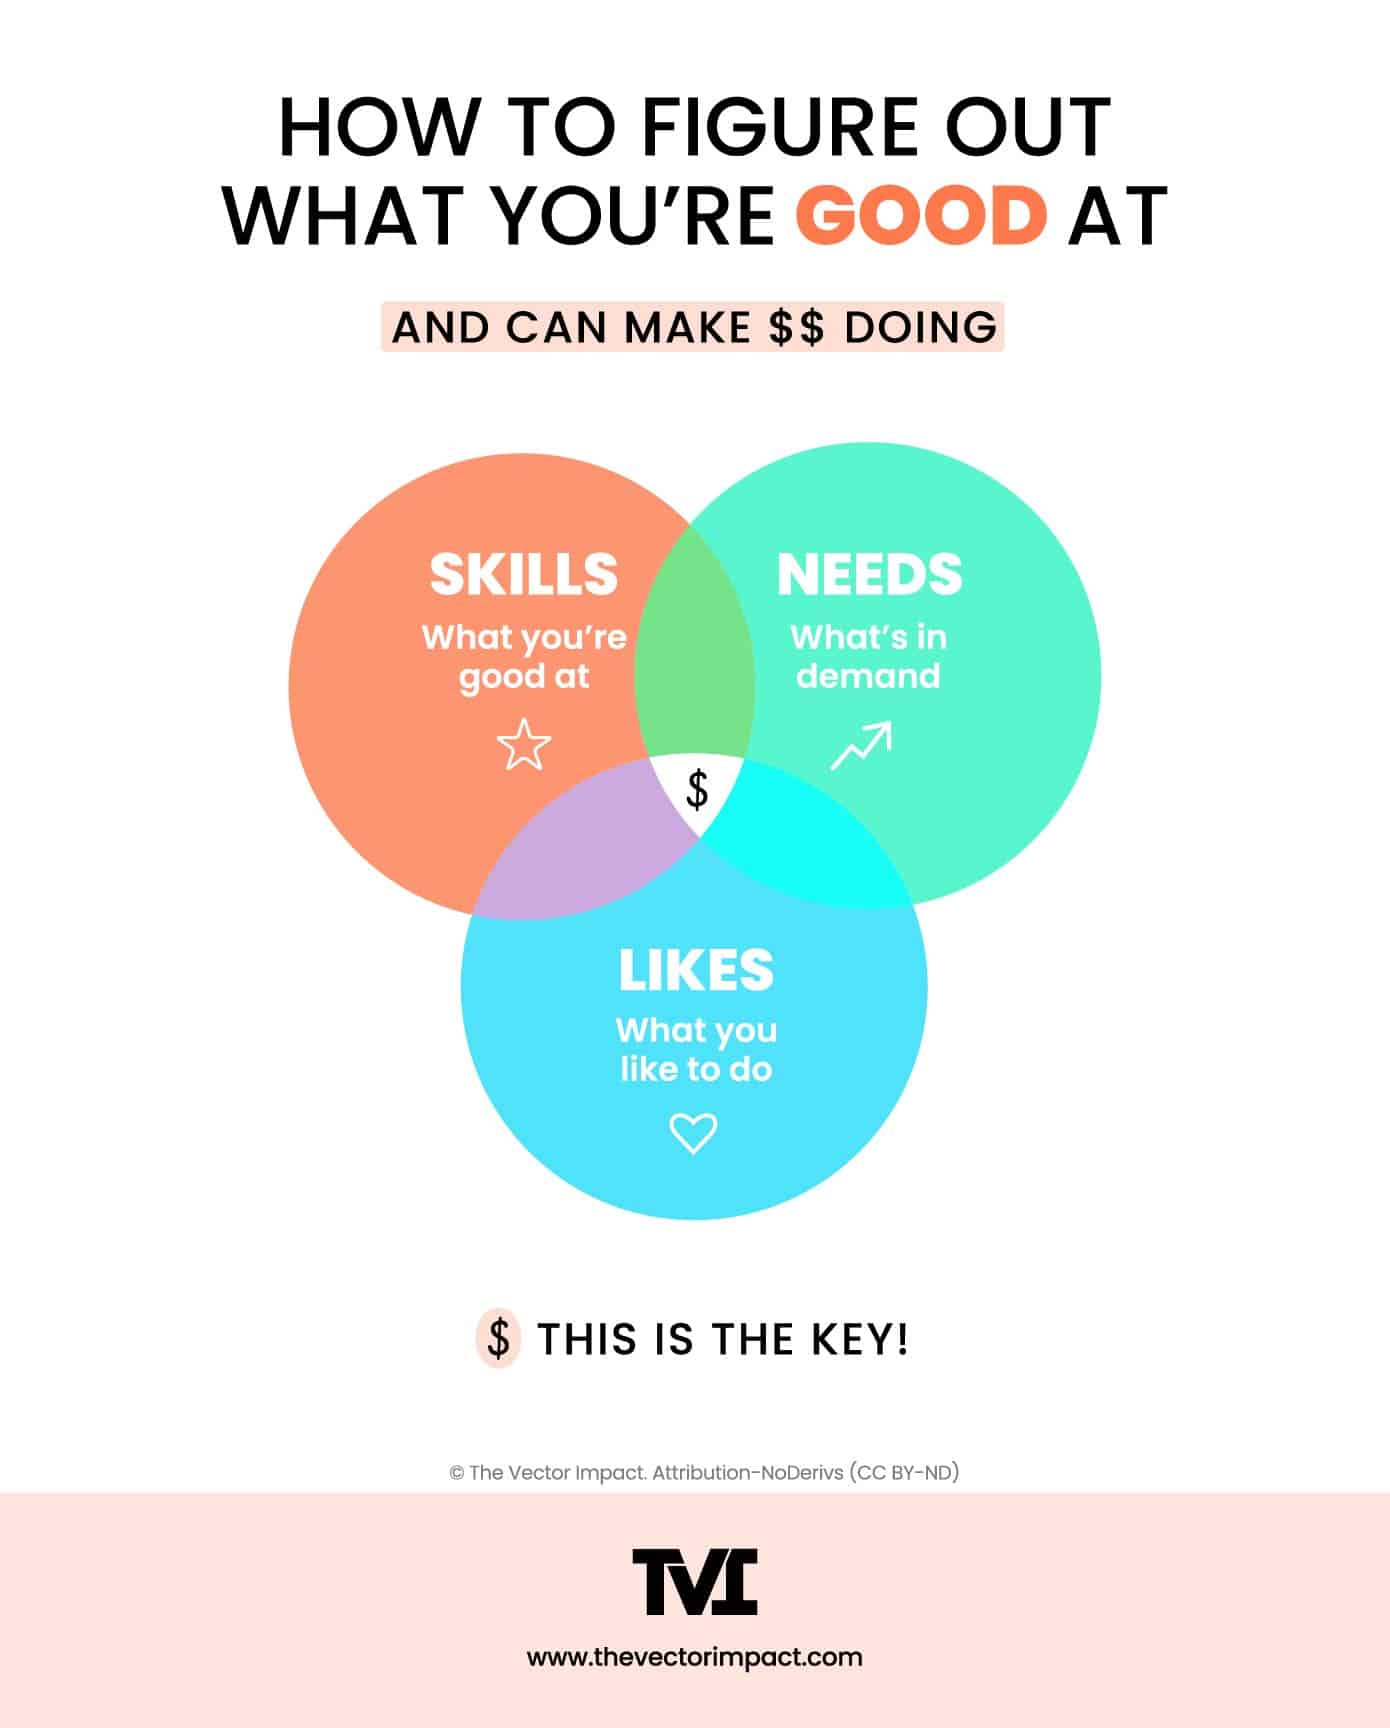 venn diagram: how to figure out what you're good at. overlapping skills, needs, and likes.